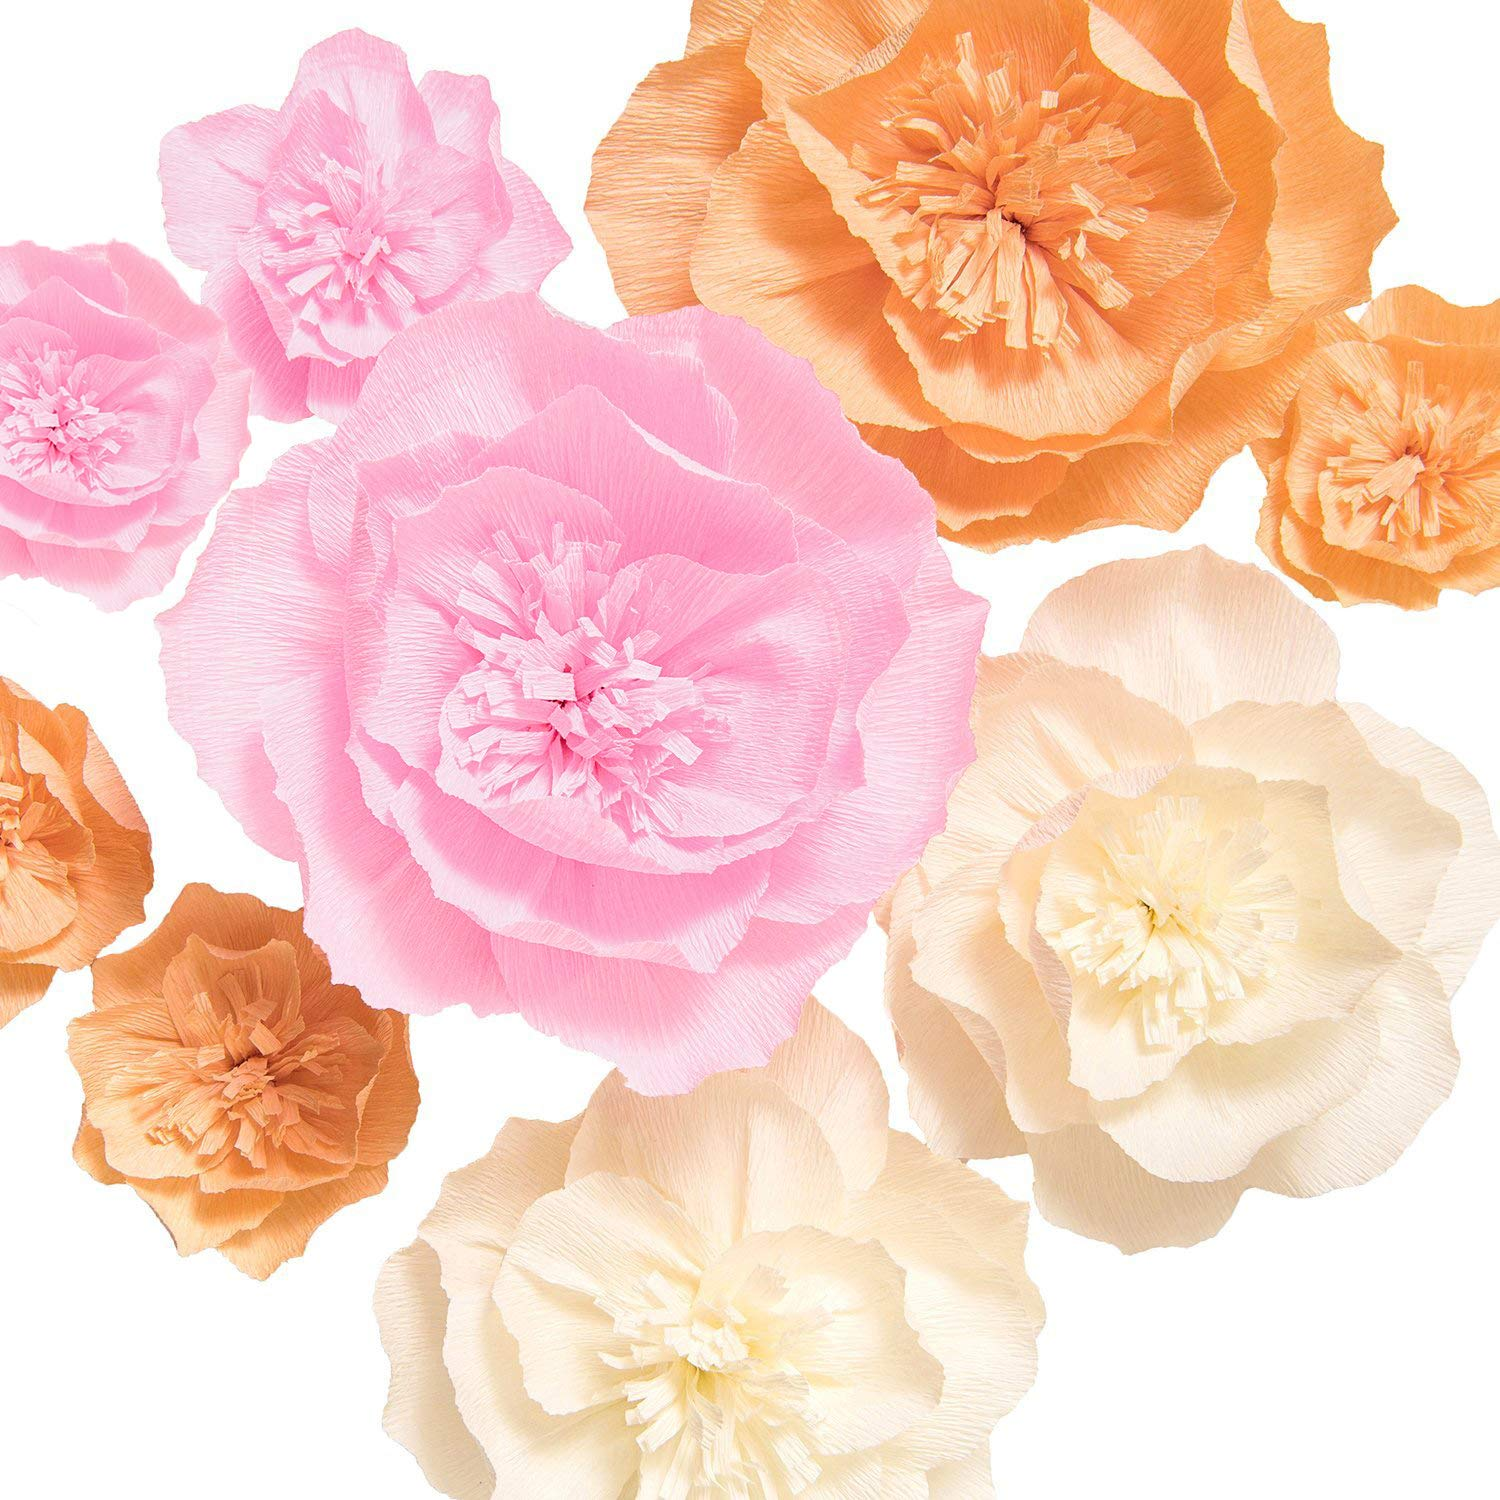 Ling S Moment Paper Flower Decorations 9 X Crepe Paper Peonies 8 4 Assorted Handcrafted Paper Flowers For Wall Party Wedding Backdrop Baby